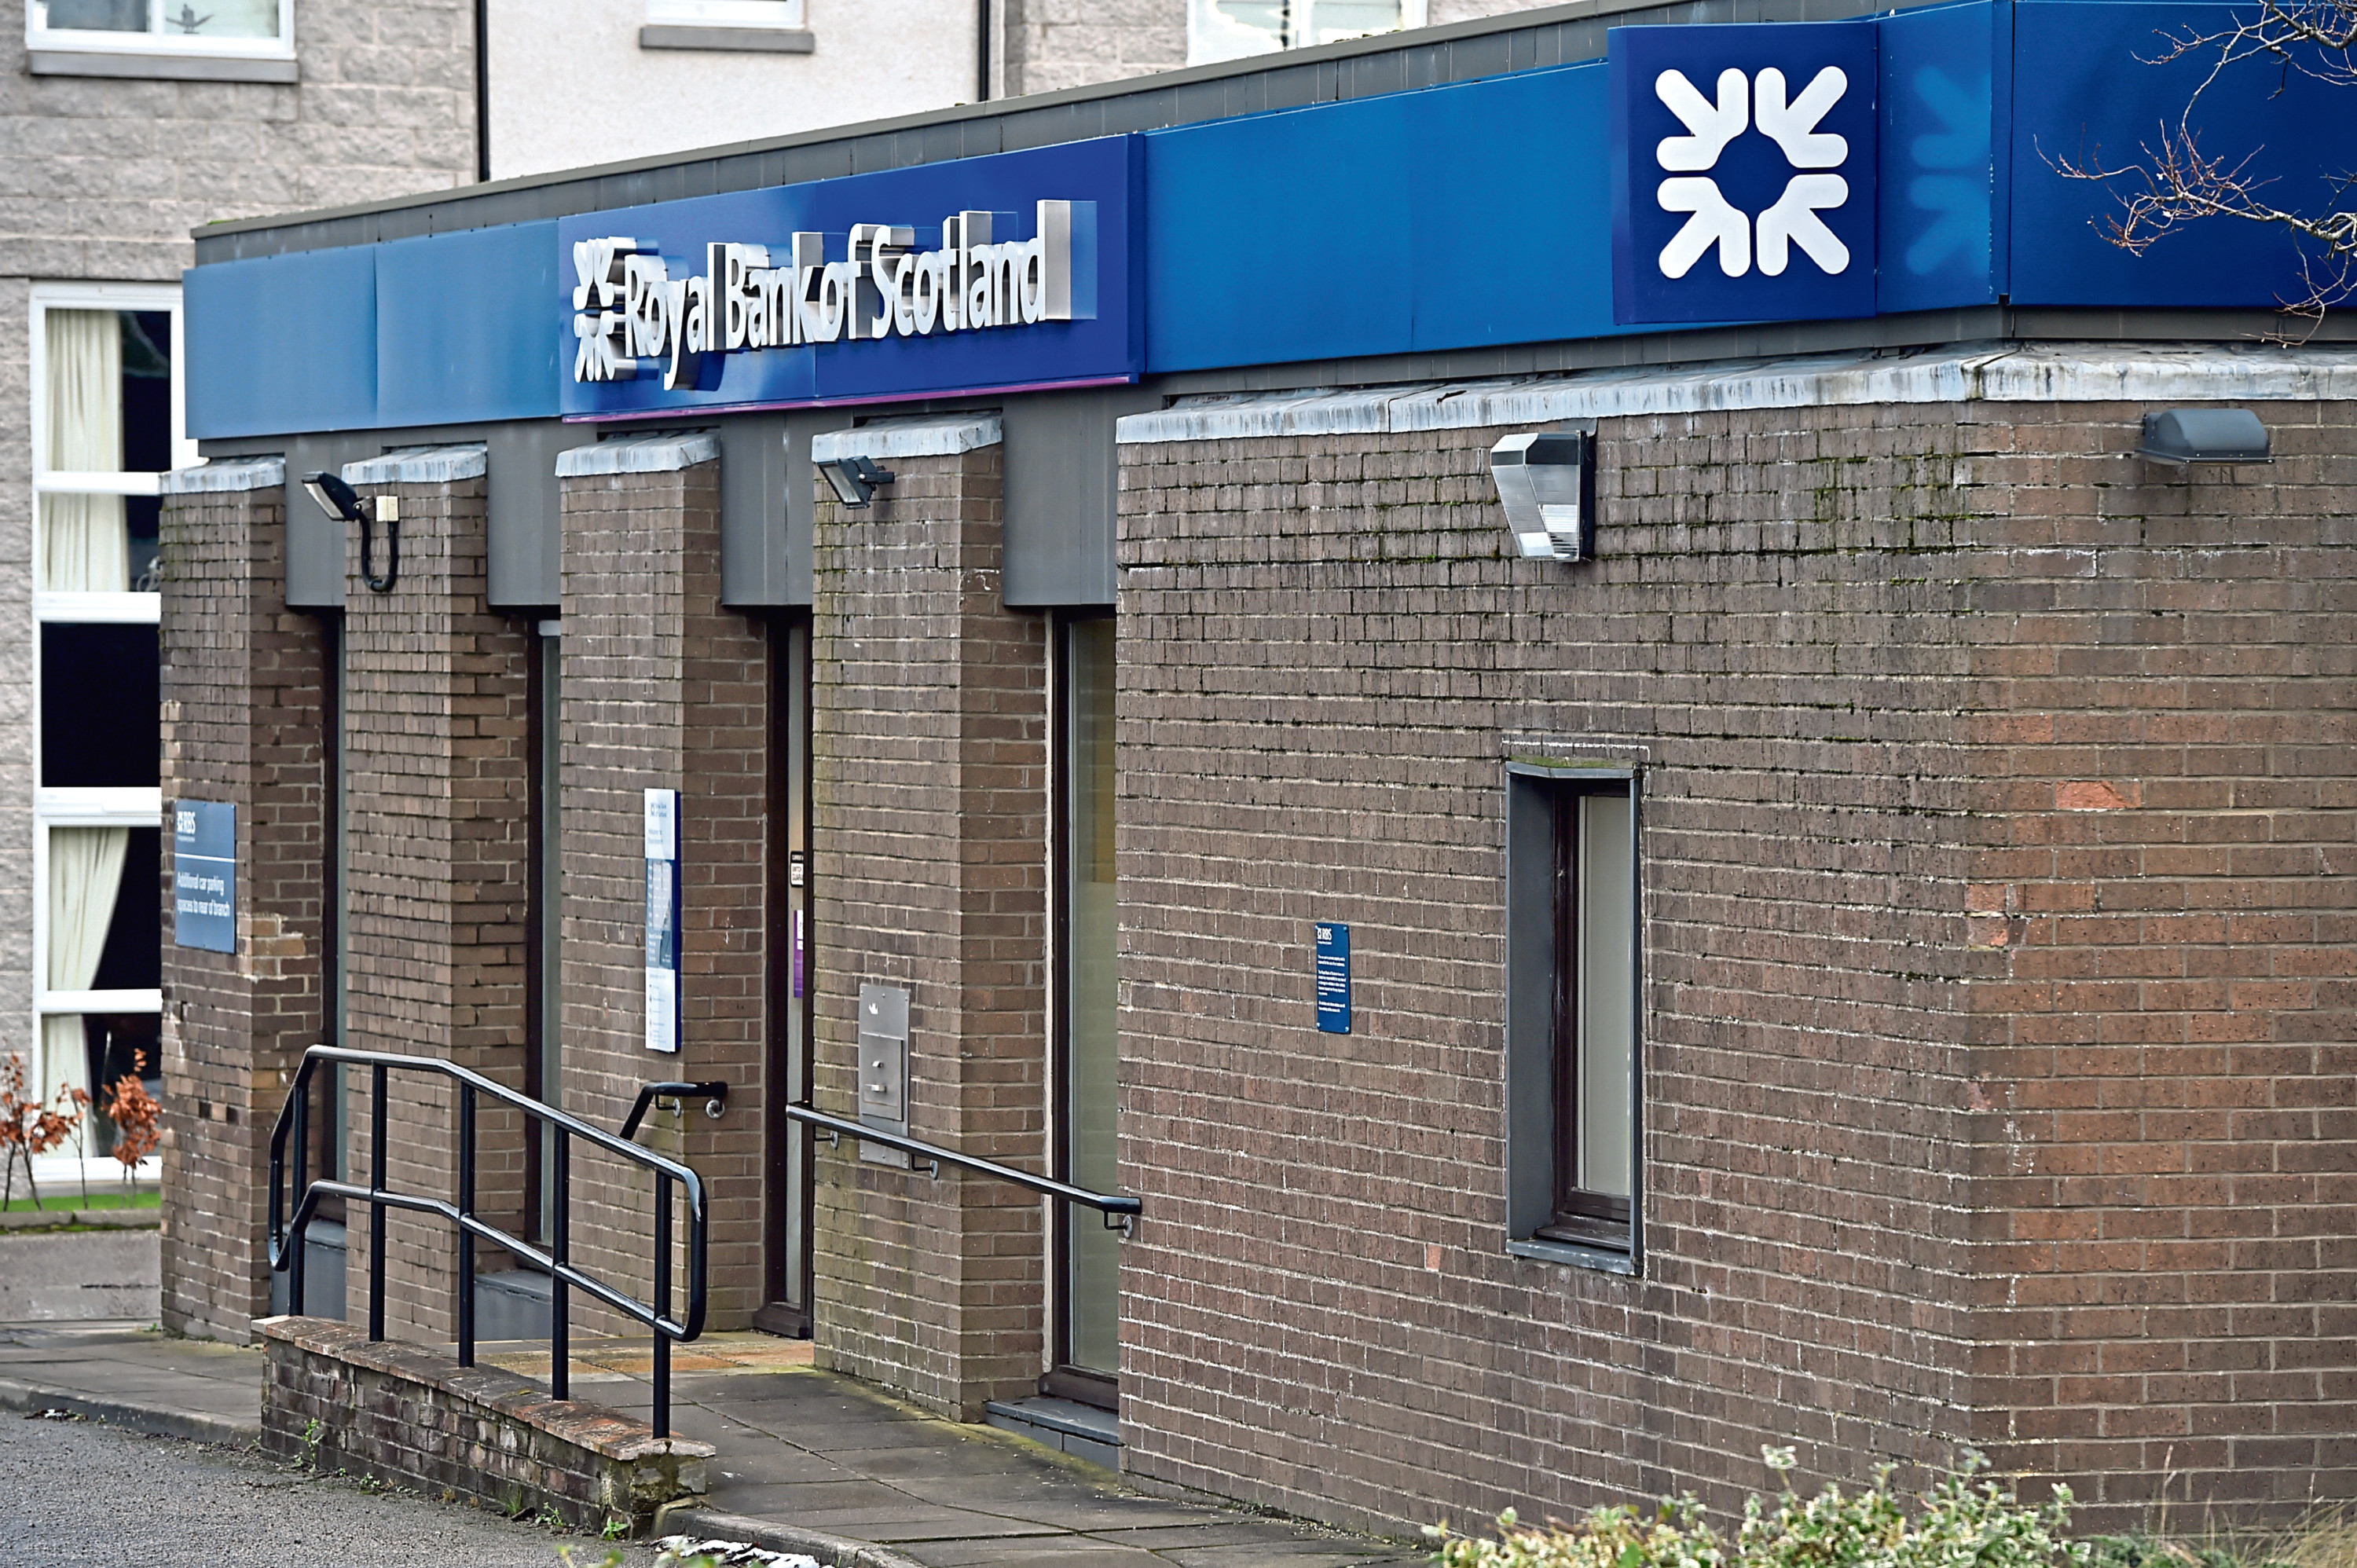 The former Royal Bank of Scotland on Burnside Road, Dyce